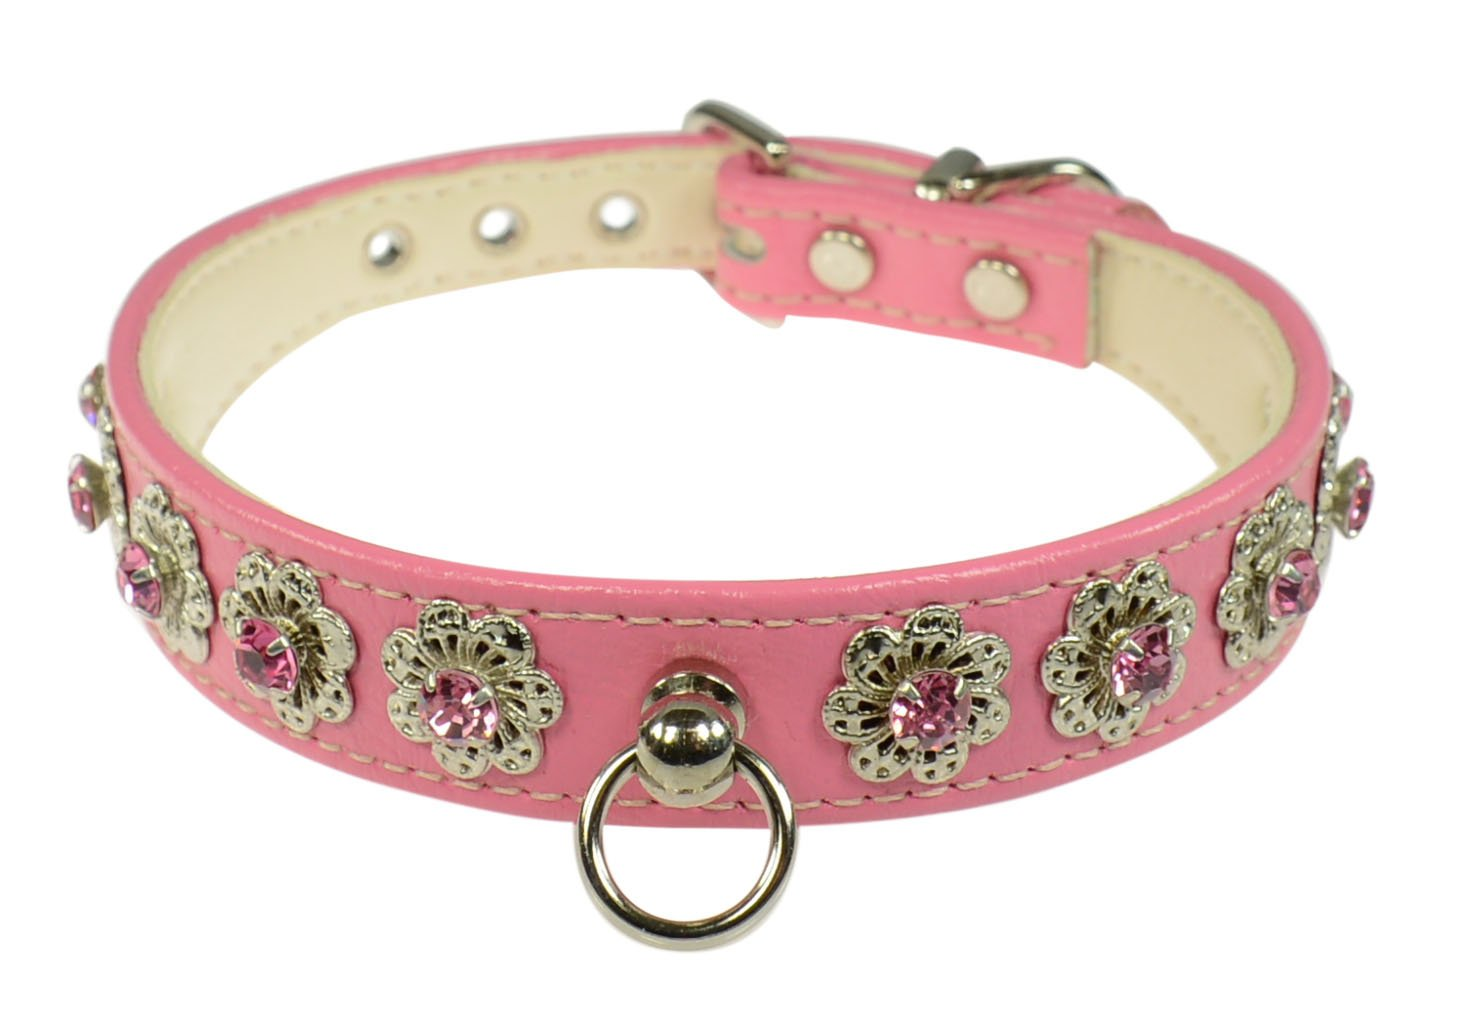 Evans Collars 3 4  Shaped Collar with Starlight Pattern, Size 10, Vinyl, Pink